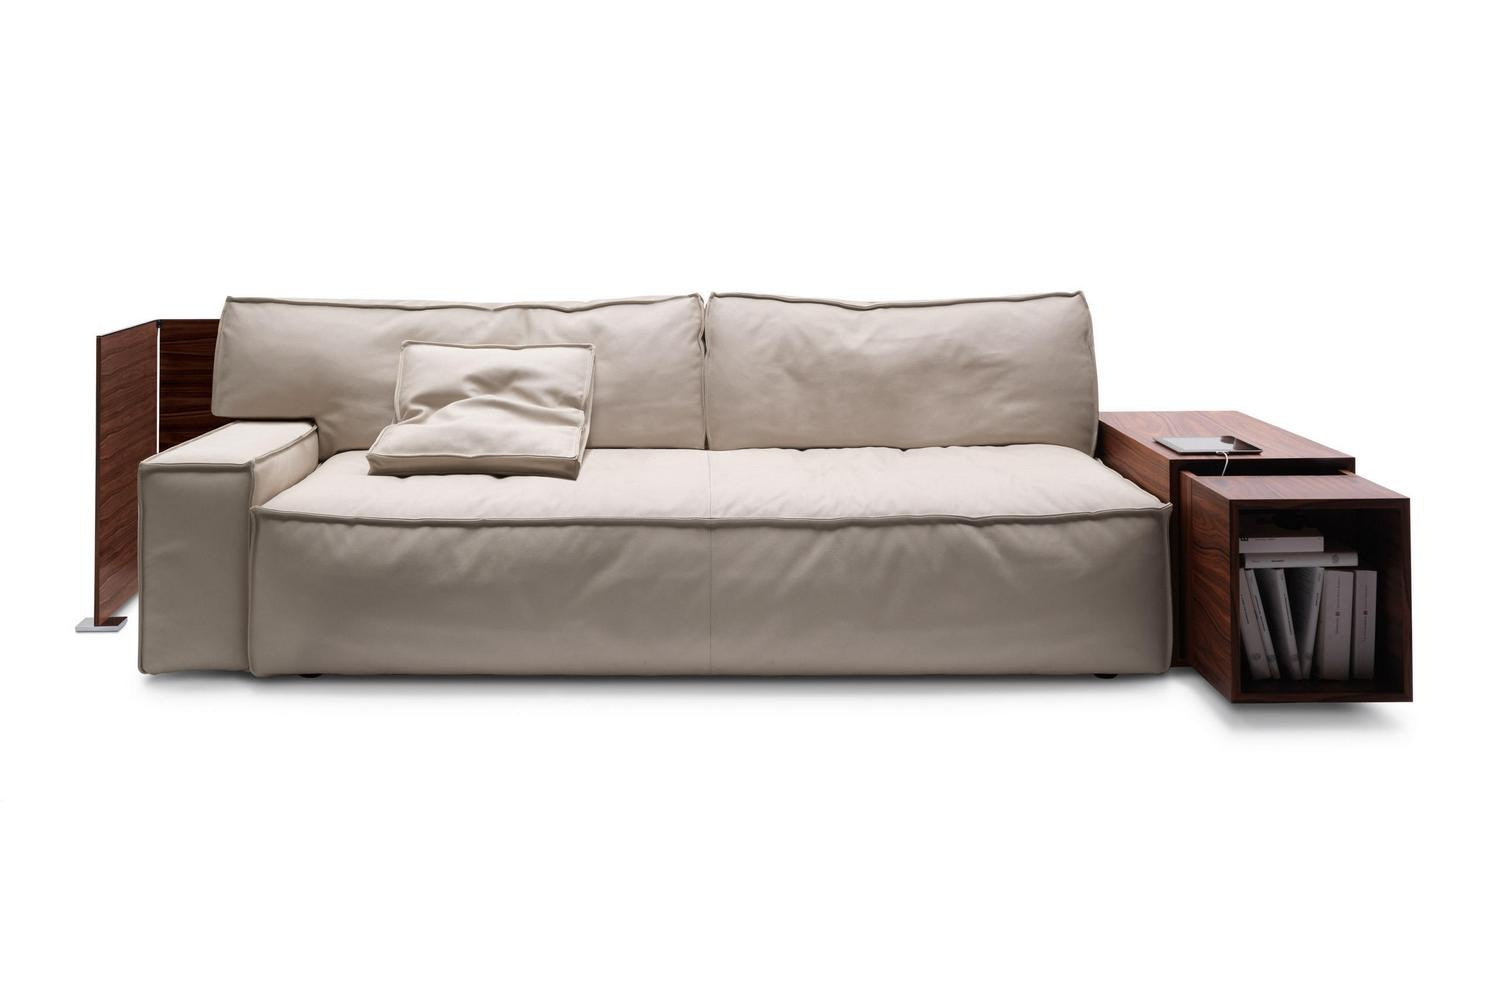 244 MyWorld Sofa by Philippe Starck for Cassina